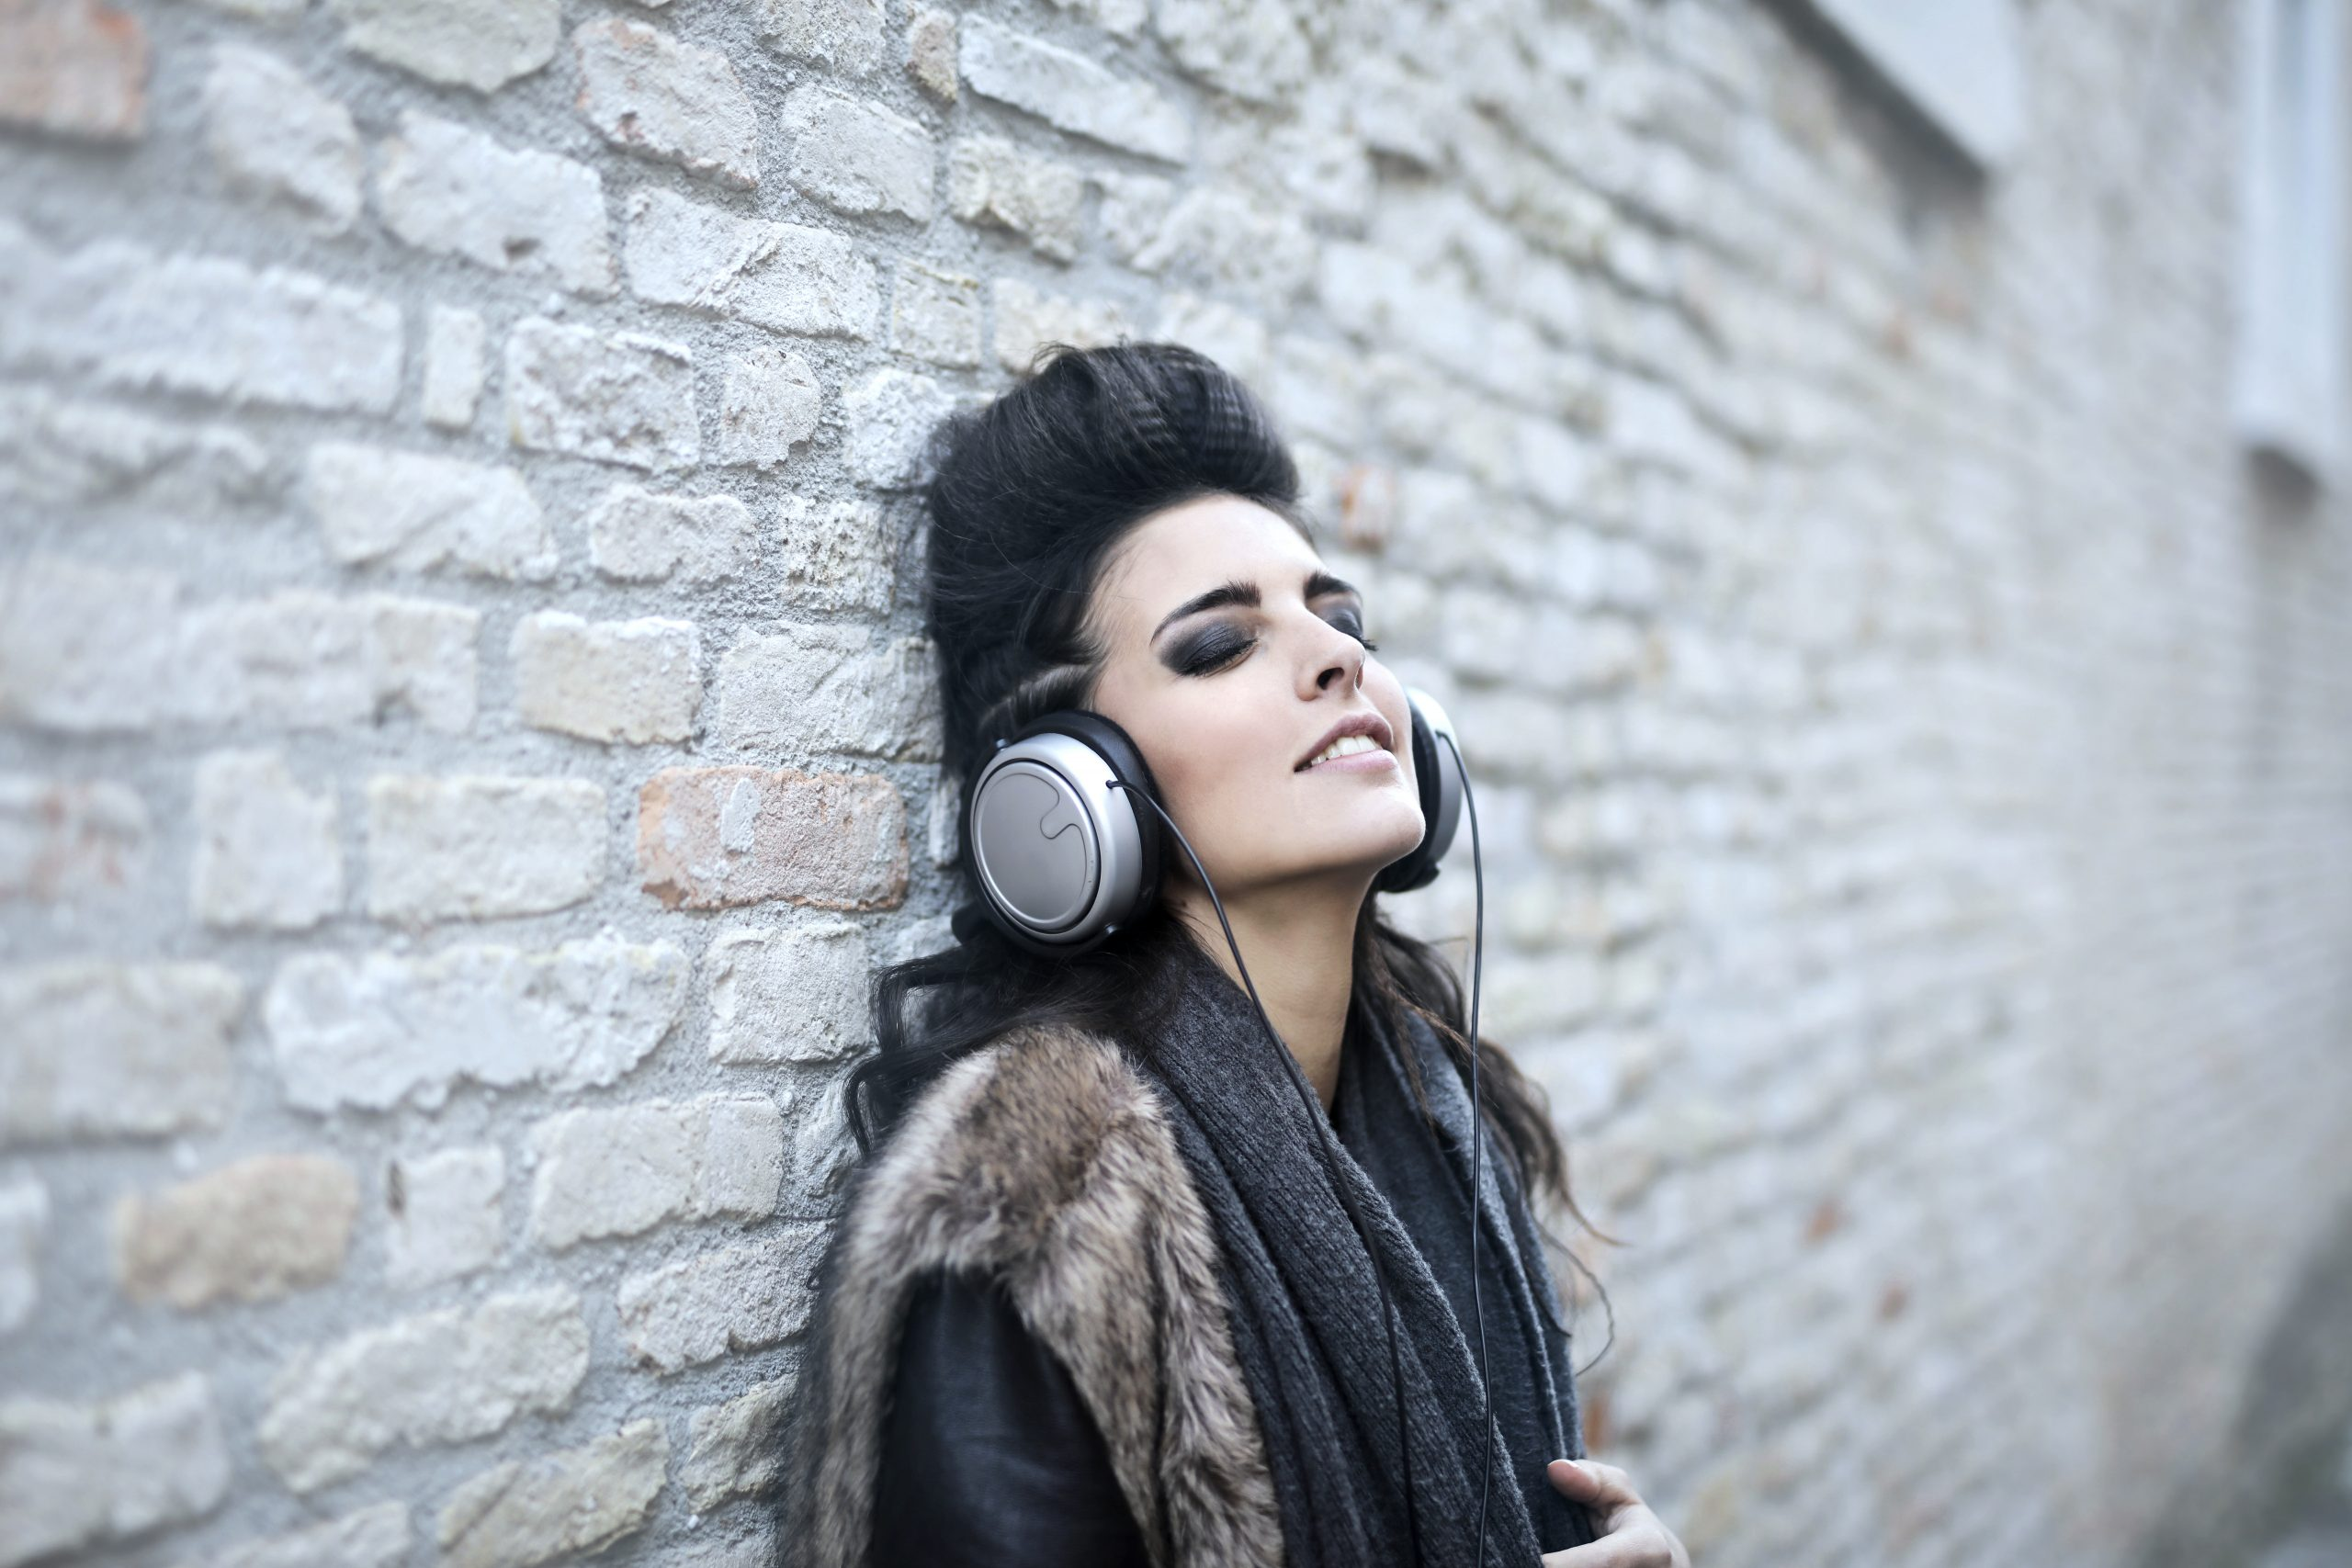 Informal young woman listening to music near grunge wall